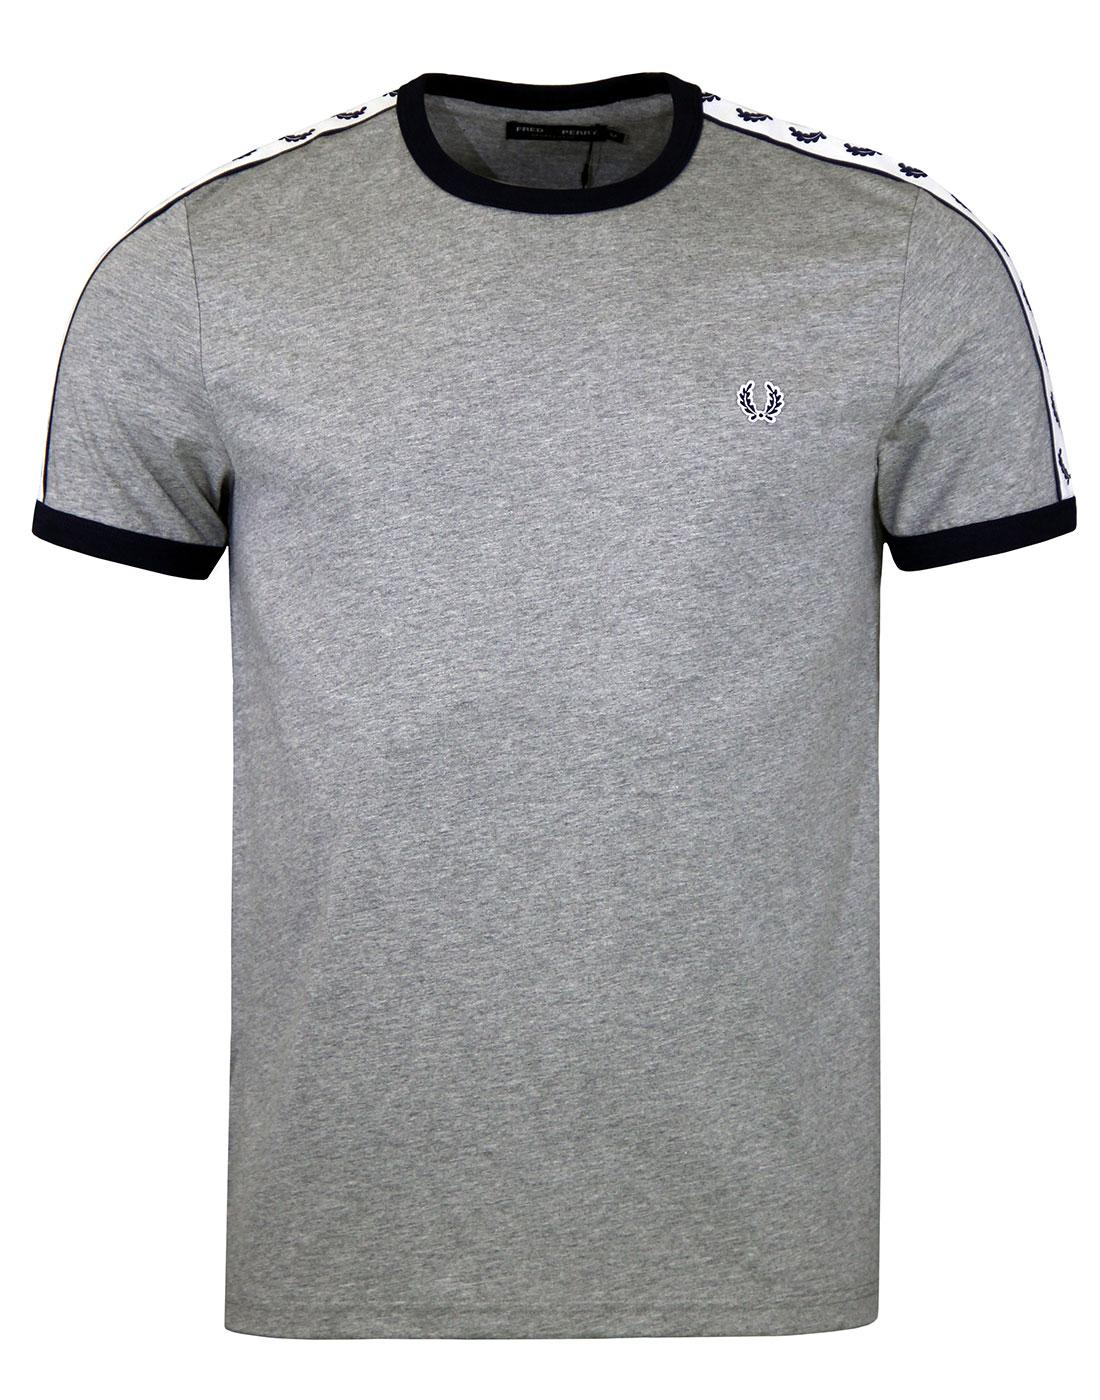 FRED PERRY M6347 Steel Marl Taped Ringer Tee